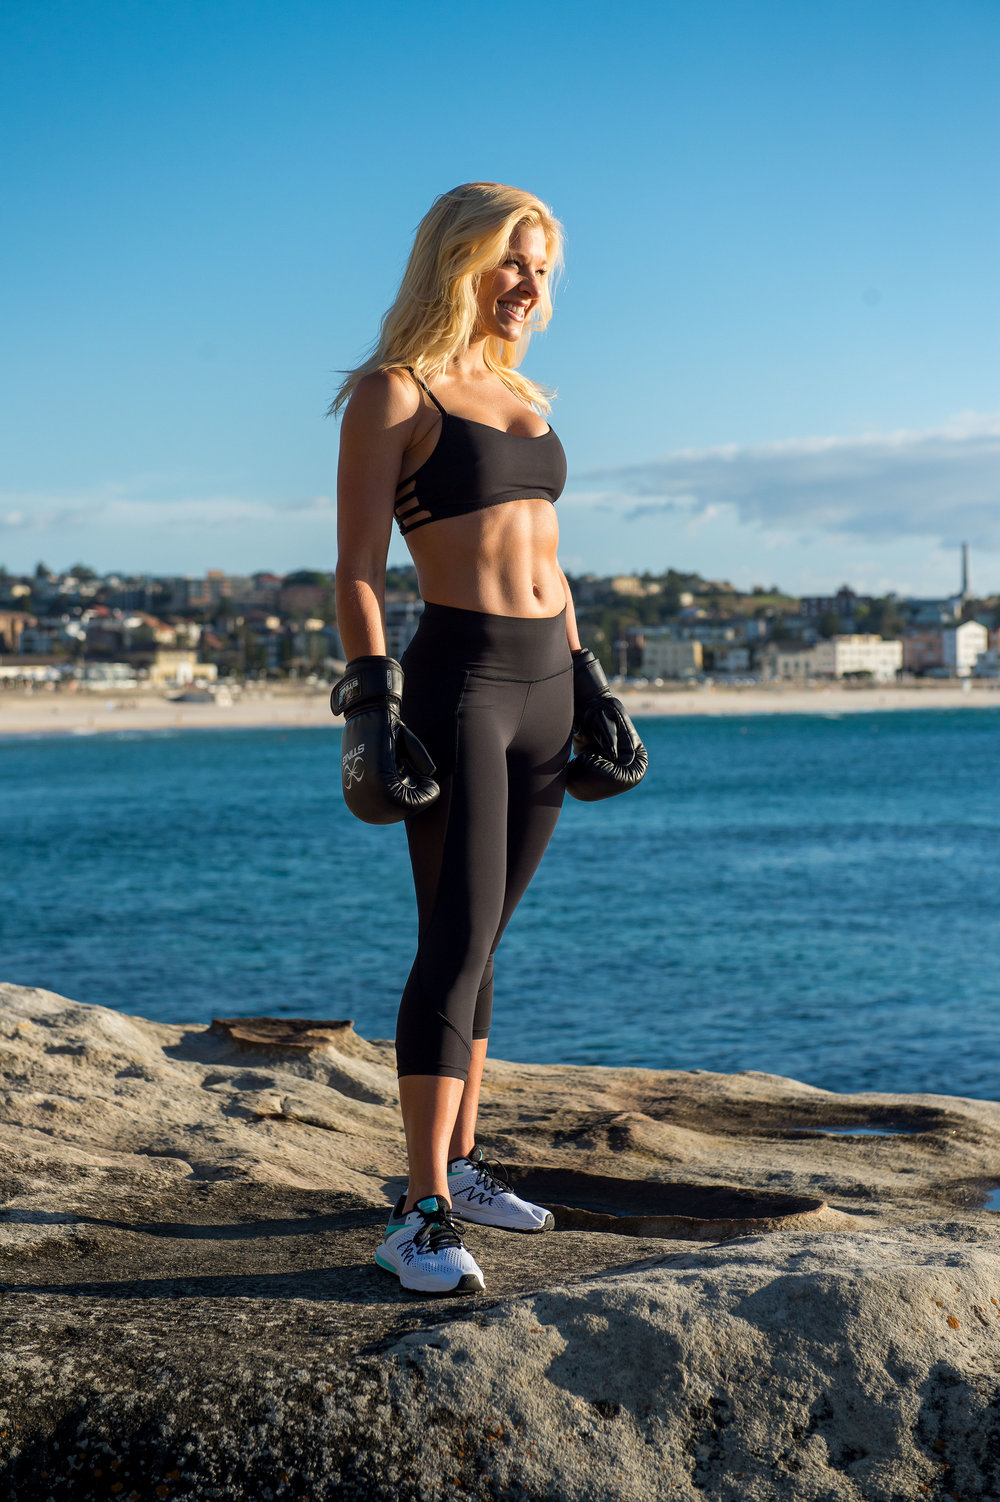 https://www.annakooiman.com/activewear/high-waist-black-compression-tights-and-strappy-black-sports-bra